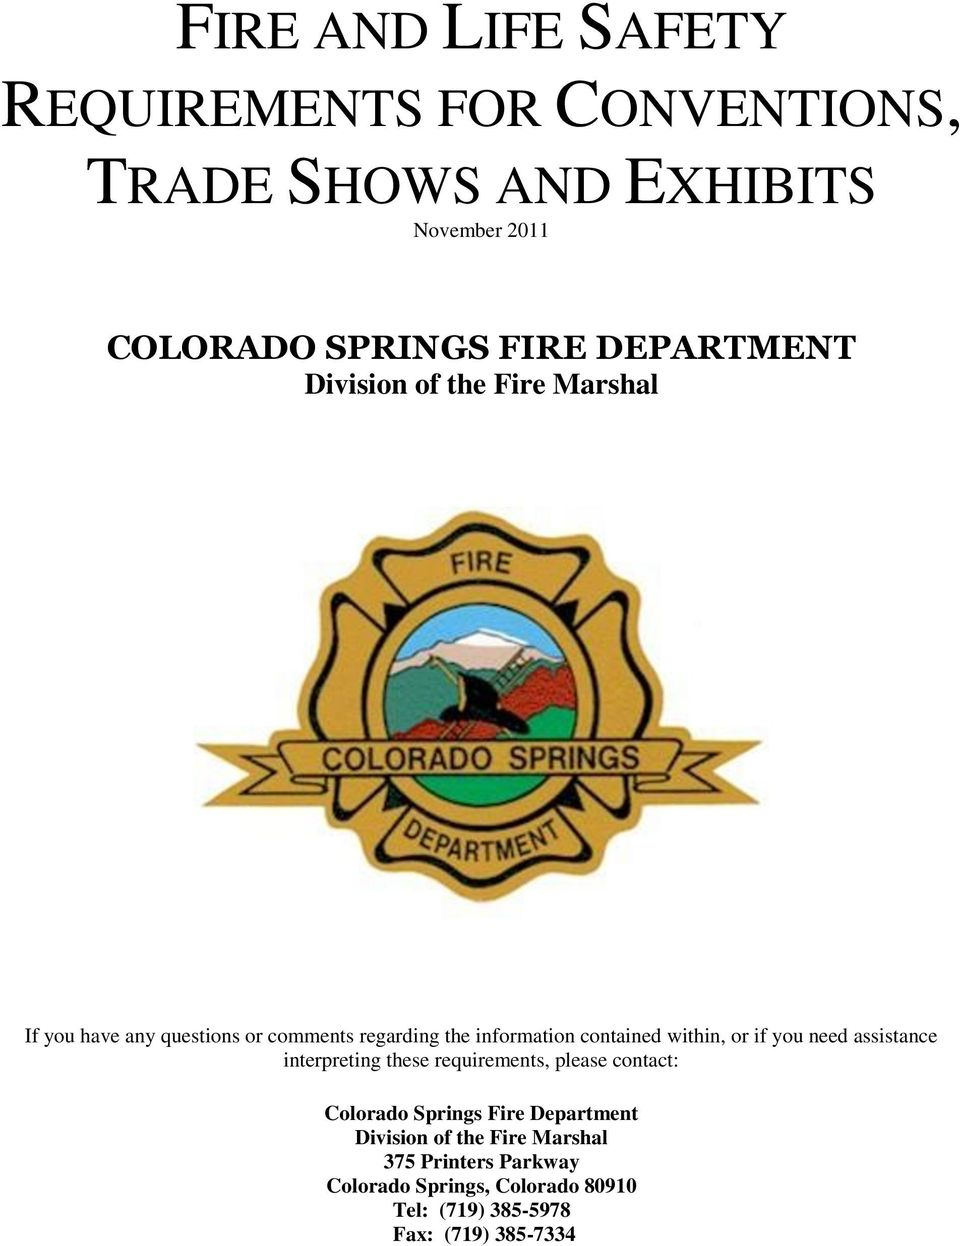 within, or if you need assistance interpreting these requirements, please contact: Colorado Springs Fire Department